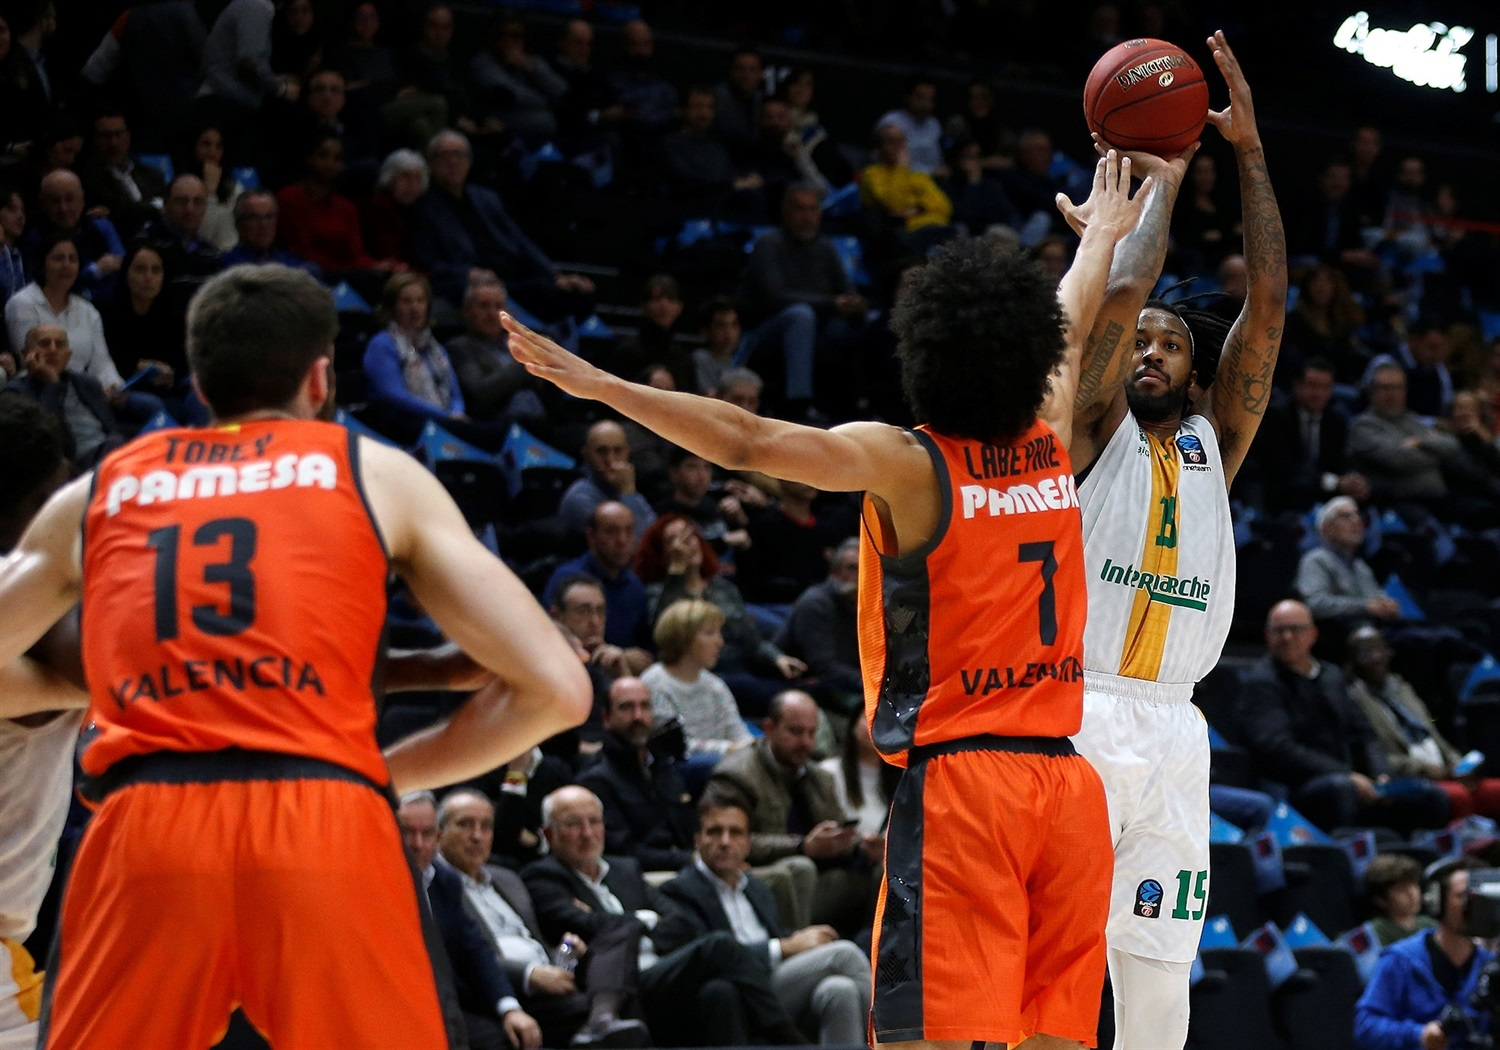 Isaiah Miles - Limoges CSP (photo Valencia) - EC18